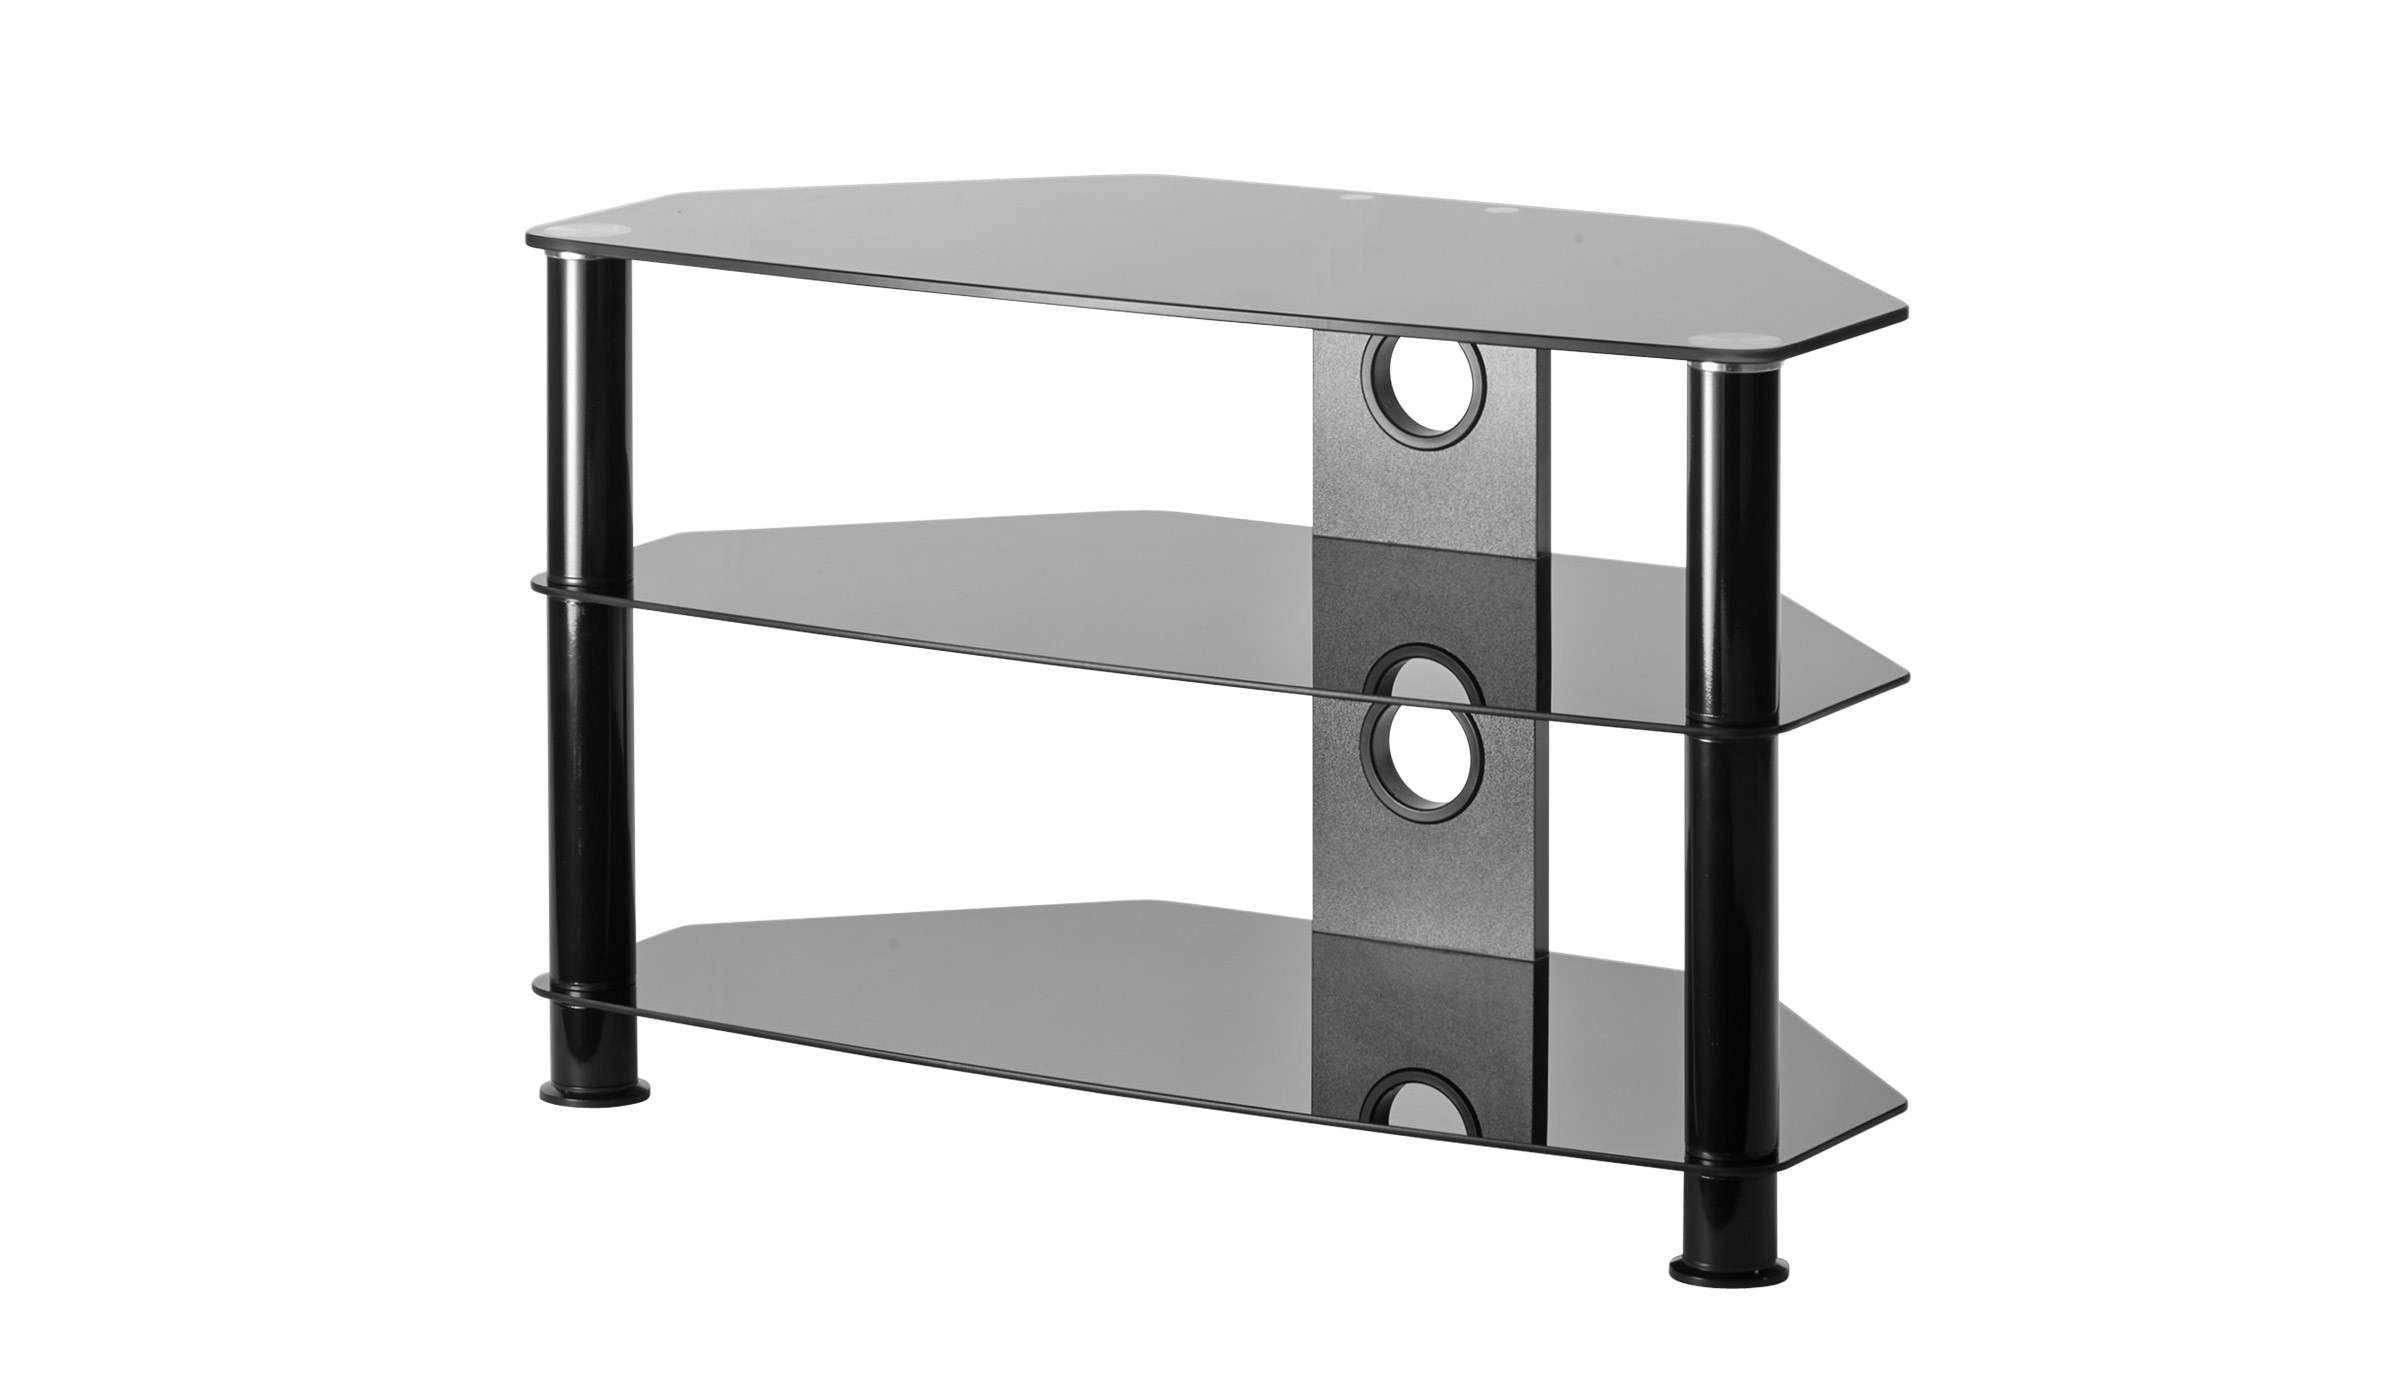 Black Glass Corner Tv Stand Up To 37 Inch Tv | Mmt Db800 Inside Black Corner Tv Cabinets (View 3 of 20)